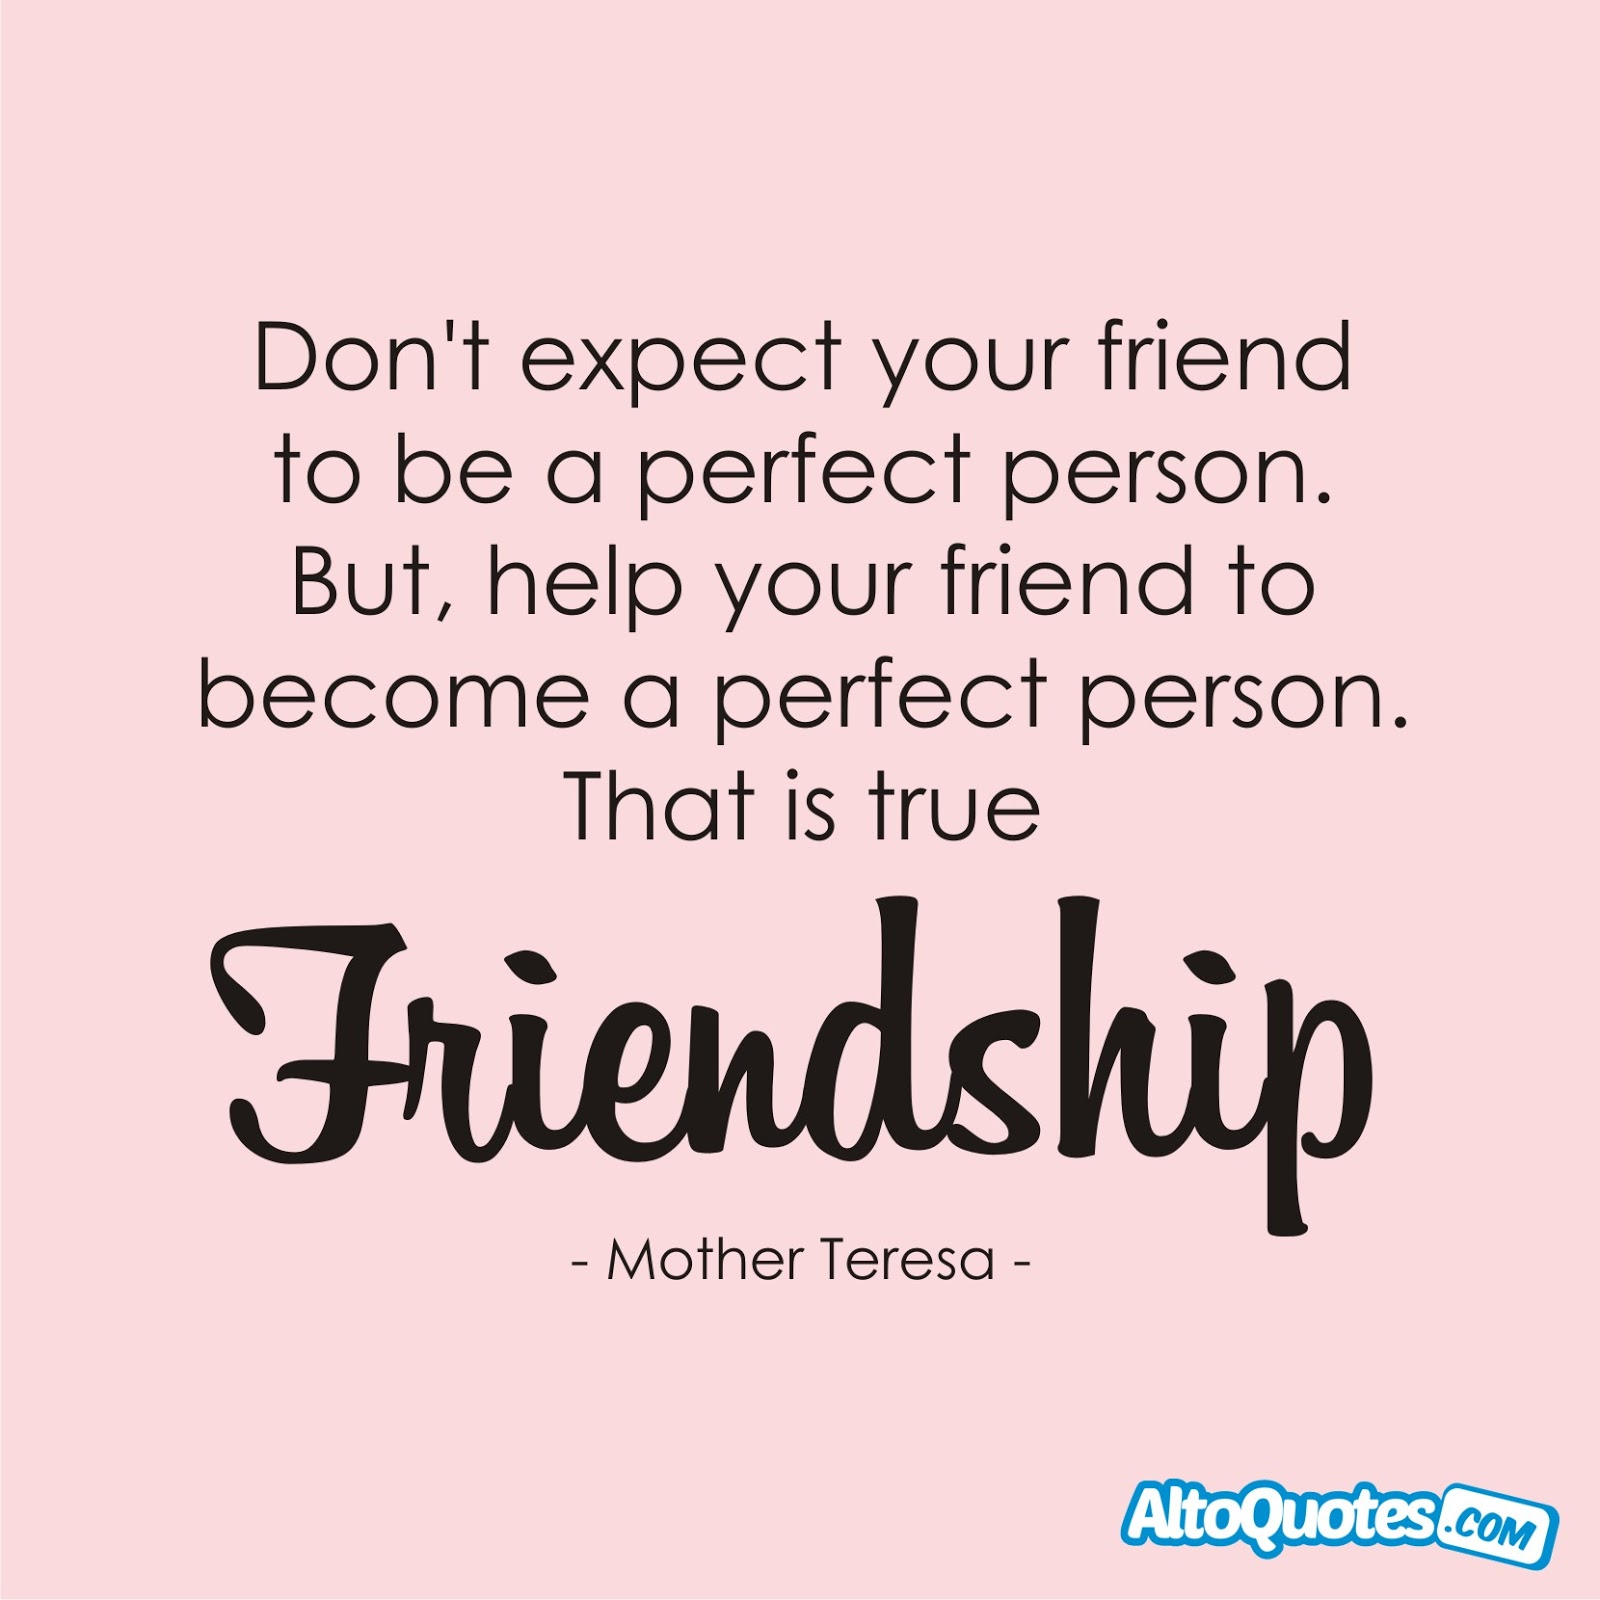 Inspirational Quotes For Kids Friendship Quotes For Kids  Bitami